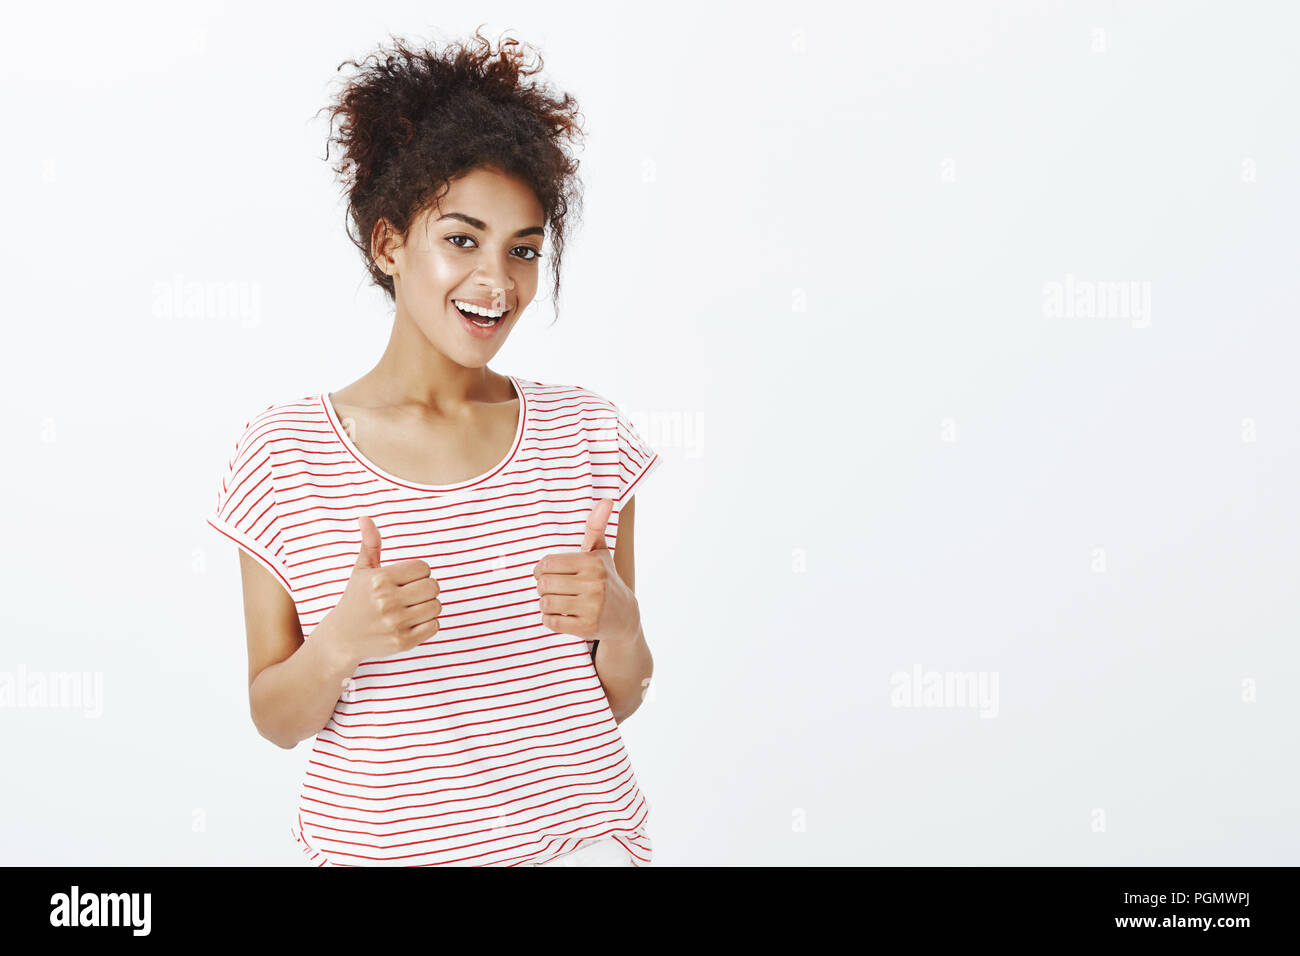 Totally agree with your opinion. Satisfied happy and outgoing woman with dark skin in striped t-shirt, raising thumbs up and smiling broadly, giving approval and liking interesting idea of friend Stock Photo